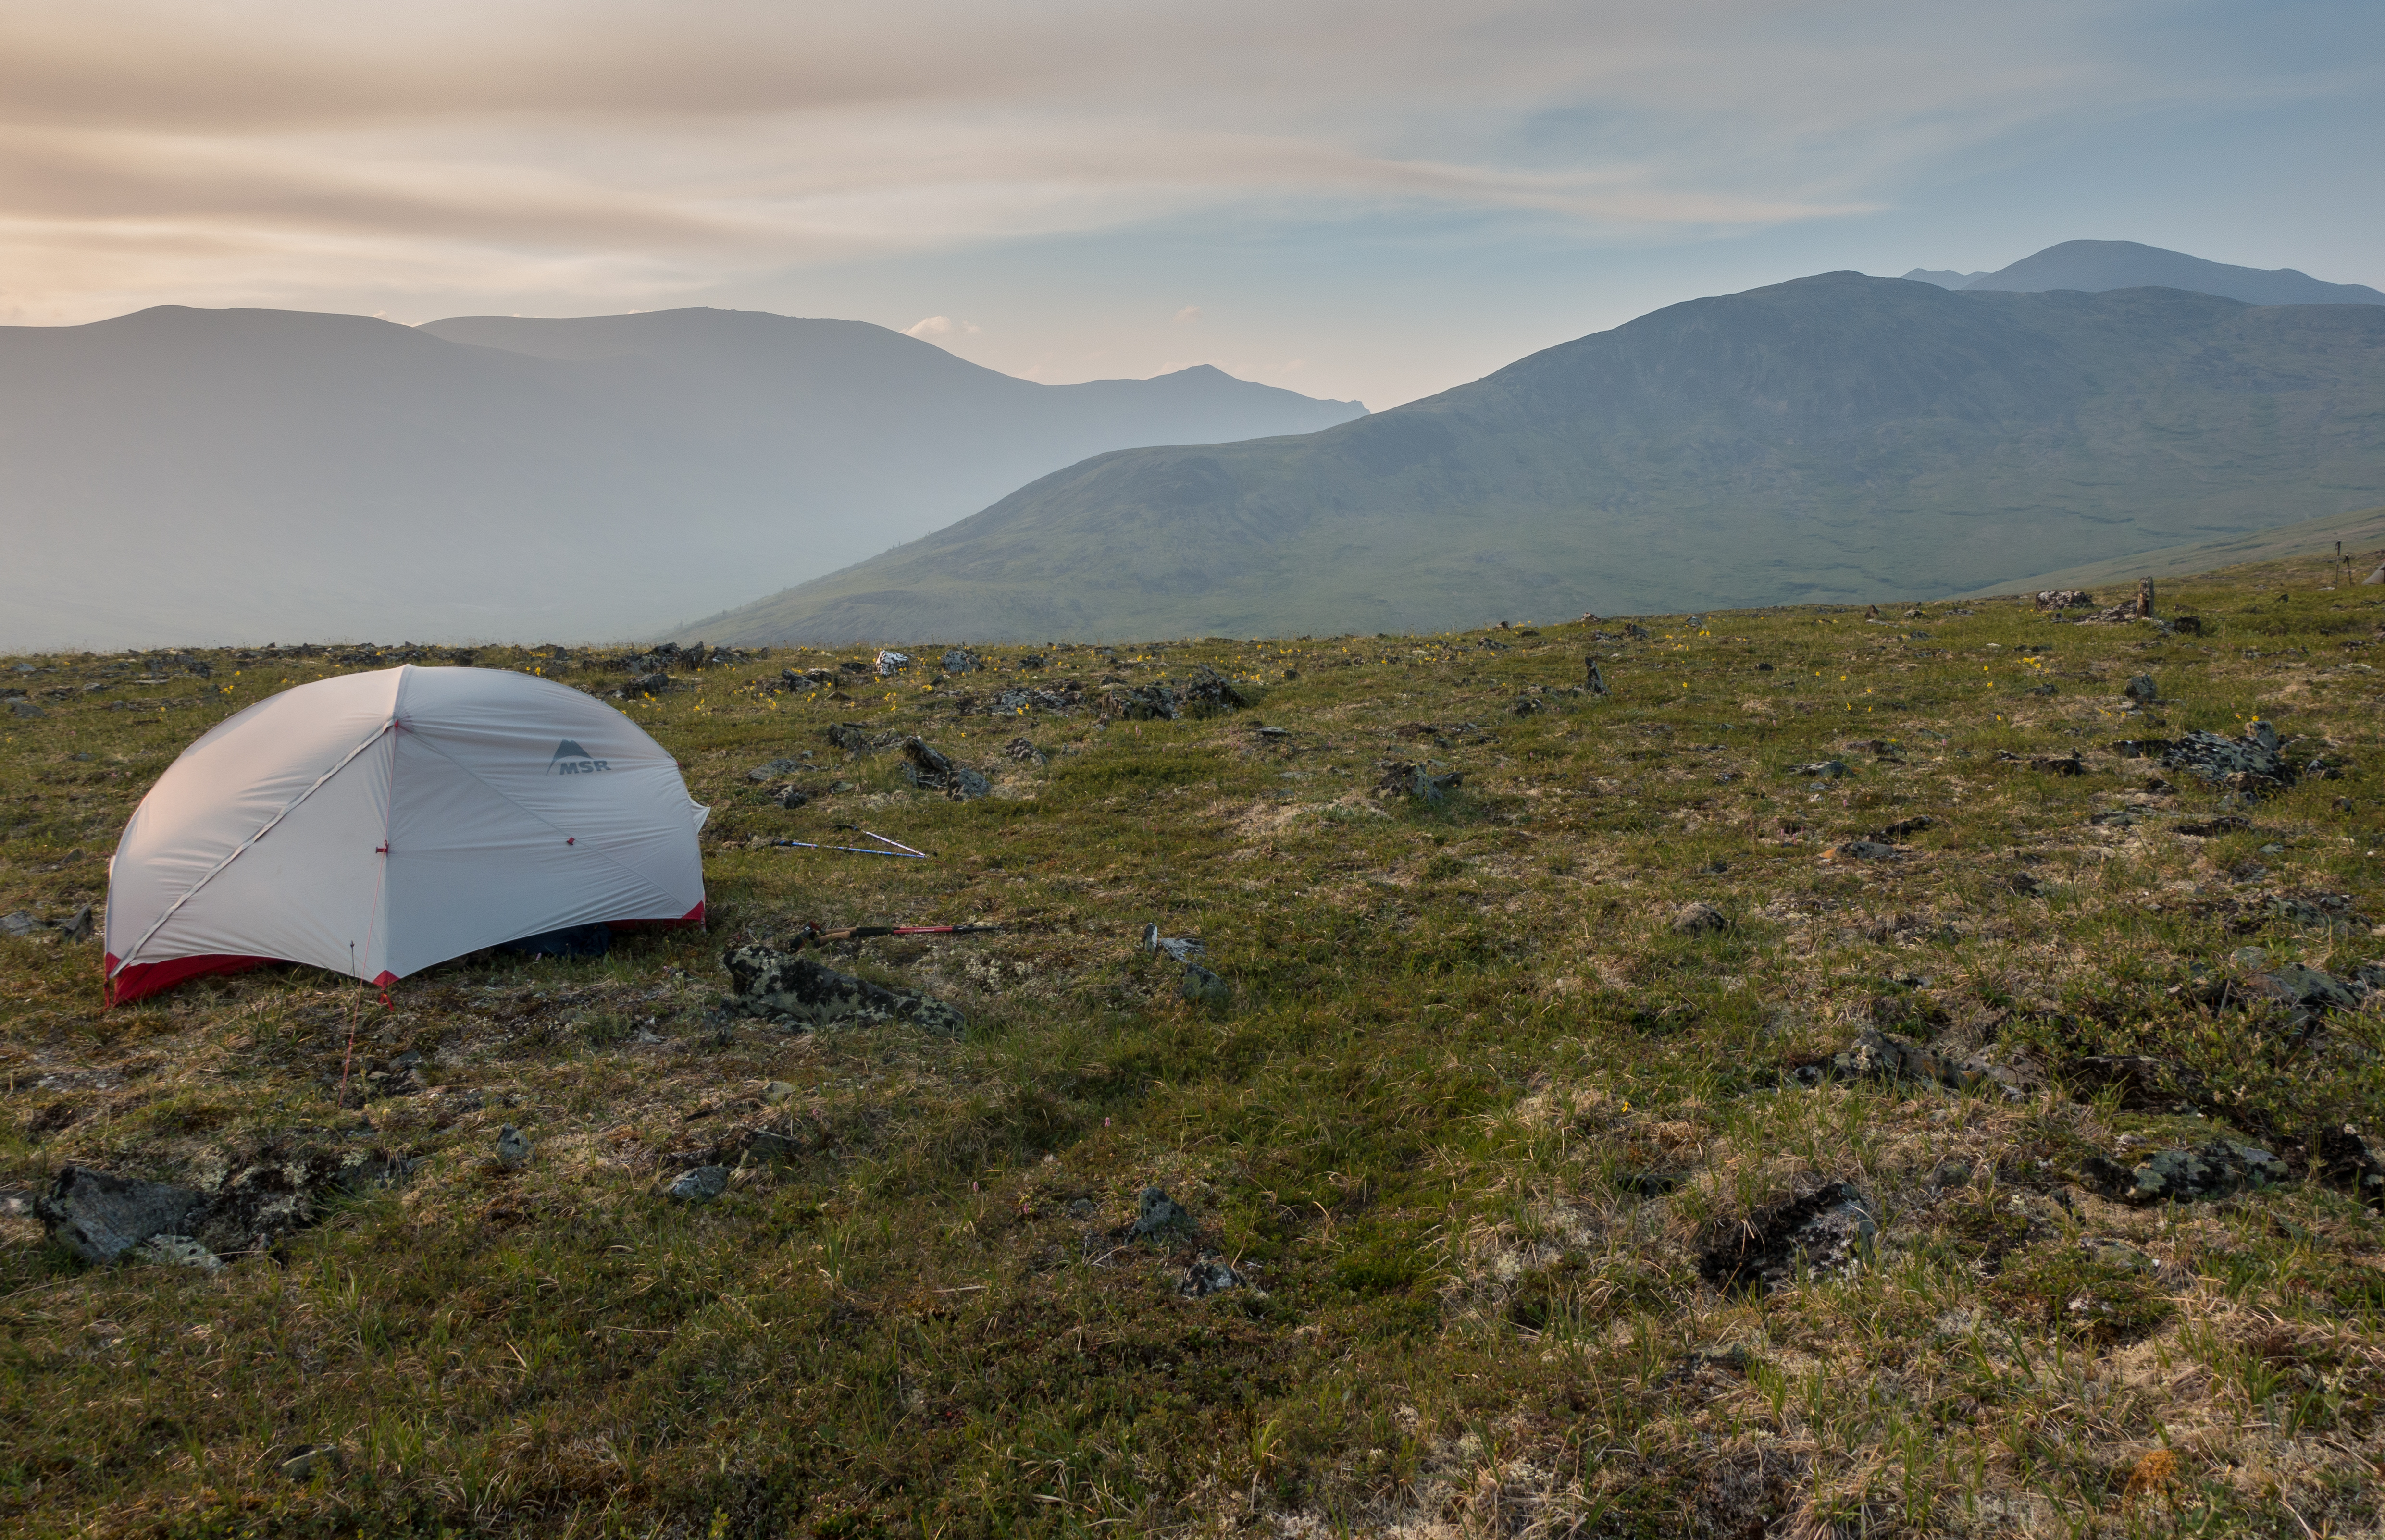 A tent pitched in an Alaskan meadow